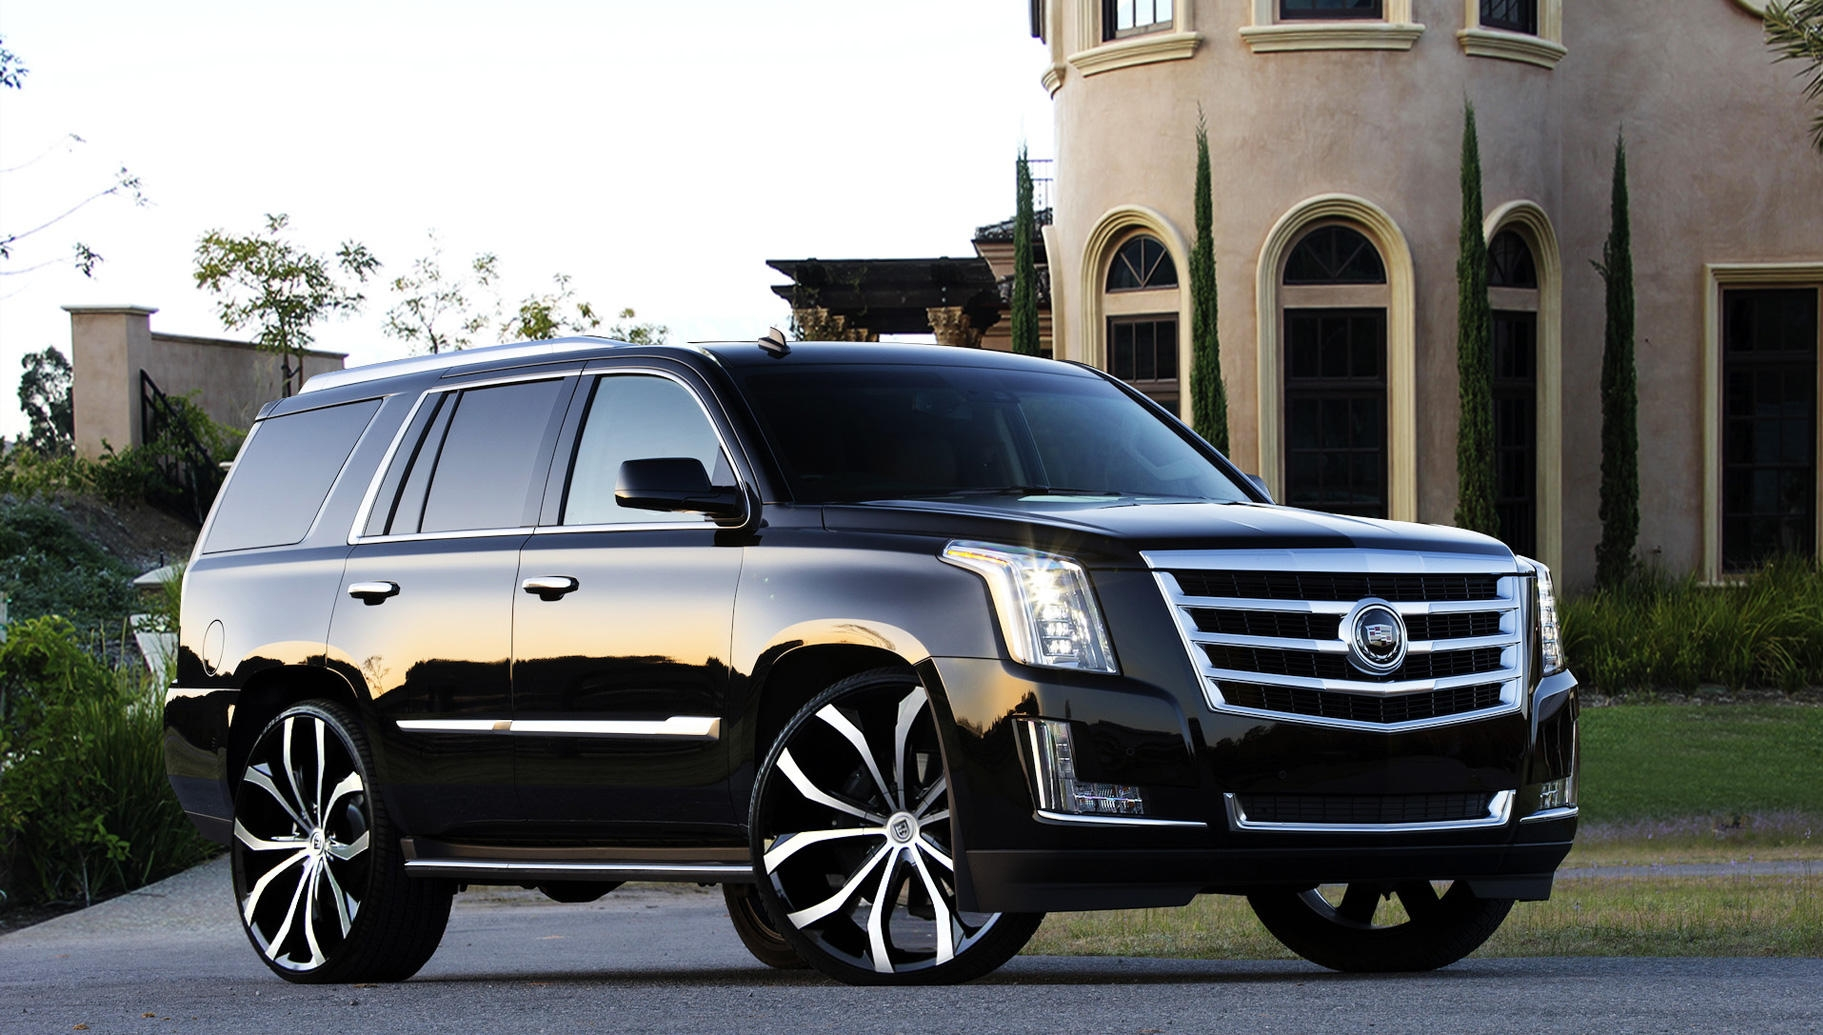 DENVER AIRPORT TO DOWNTOWN LIMO